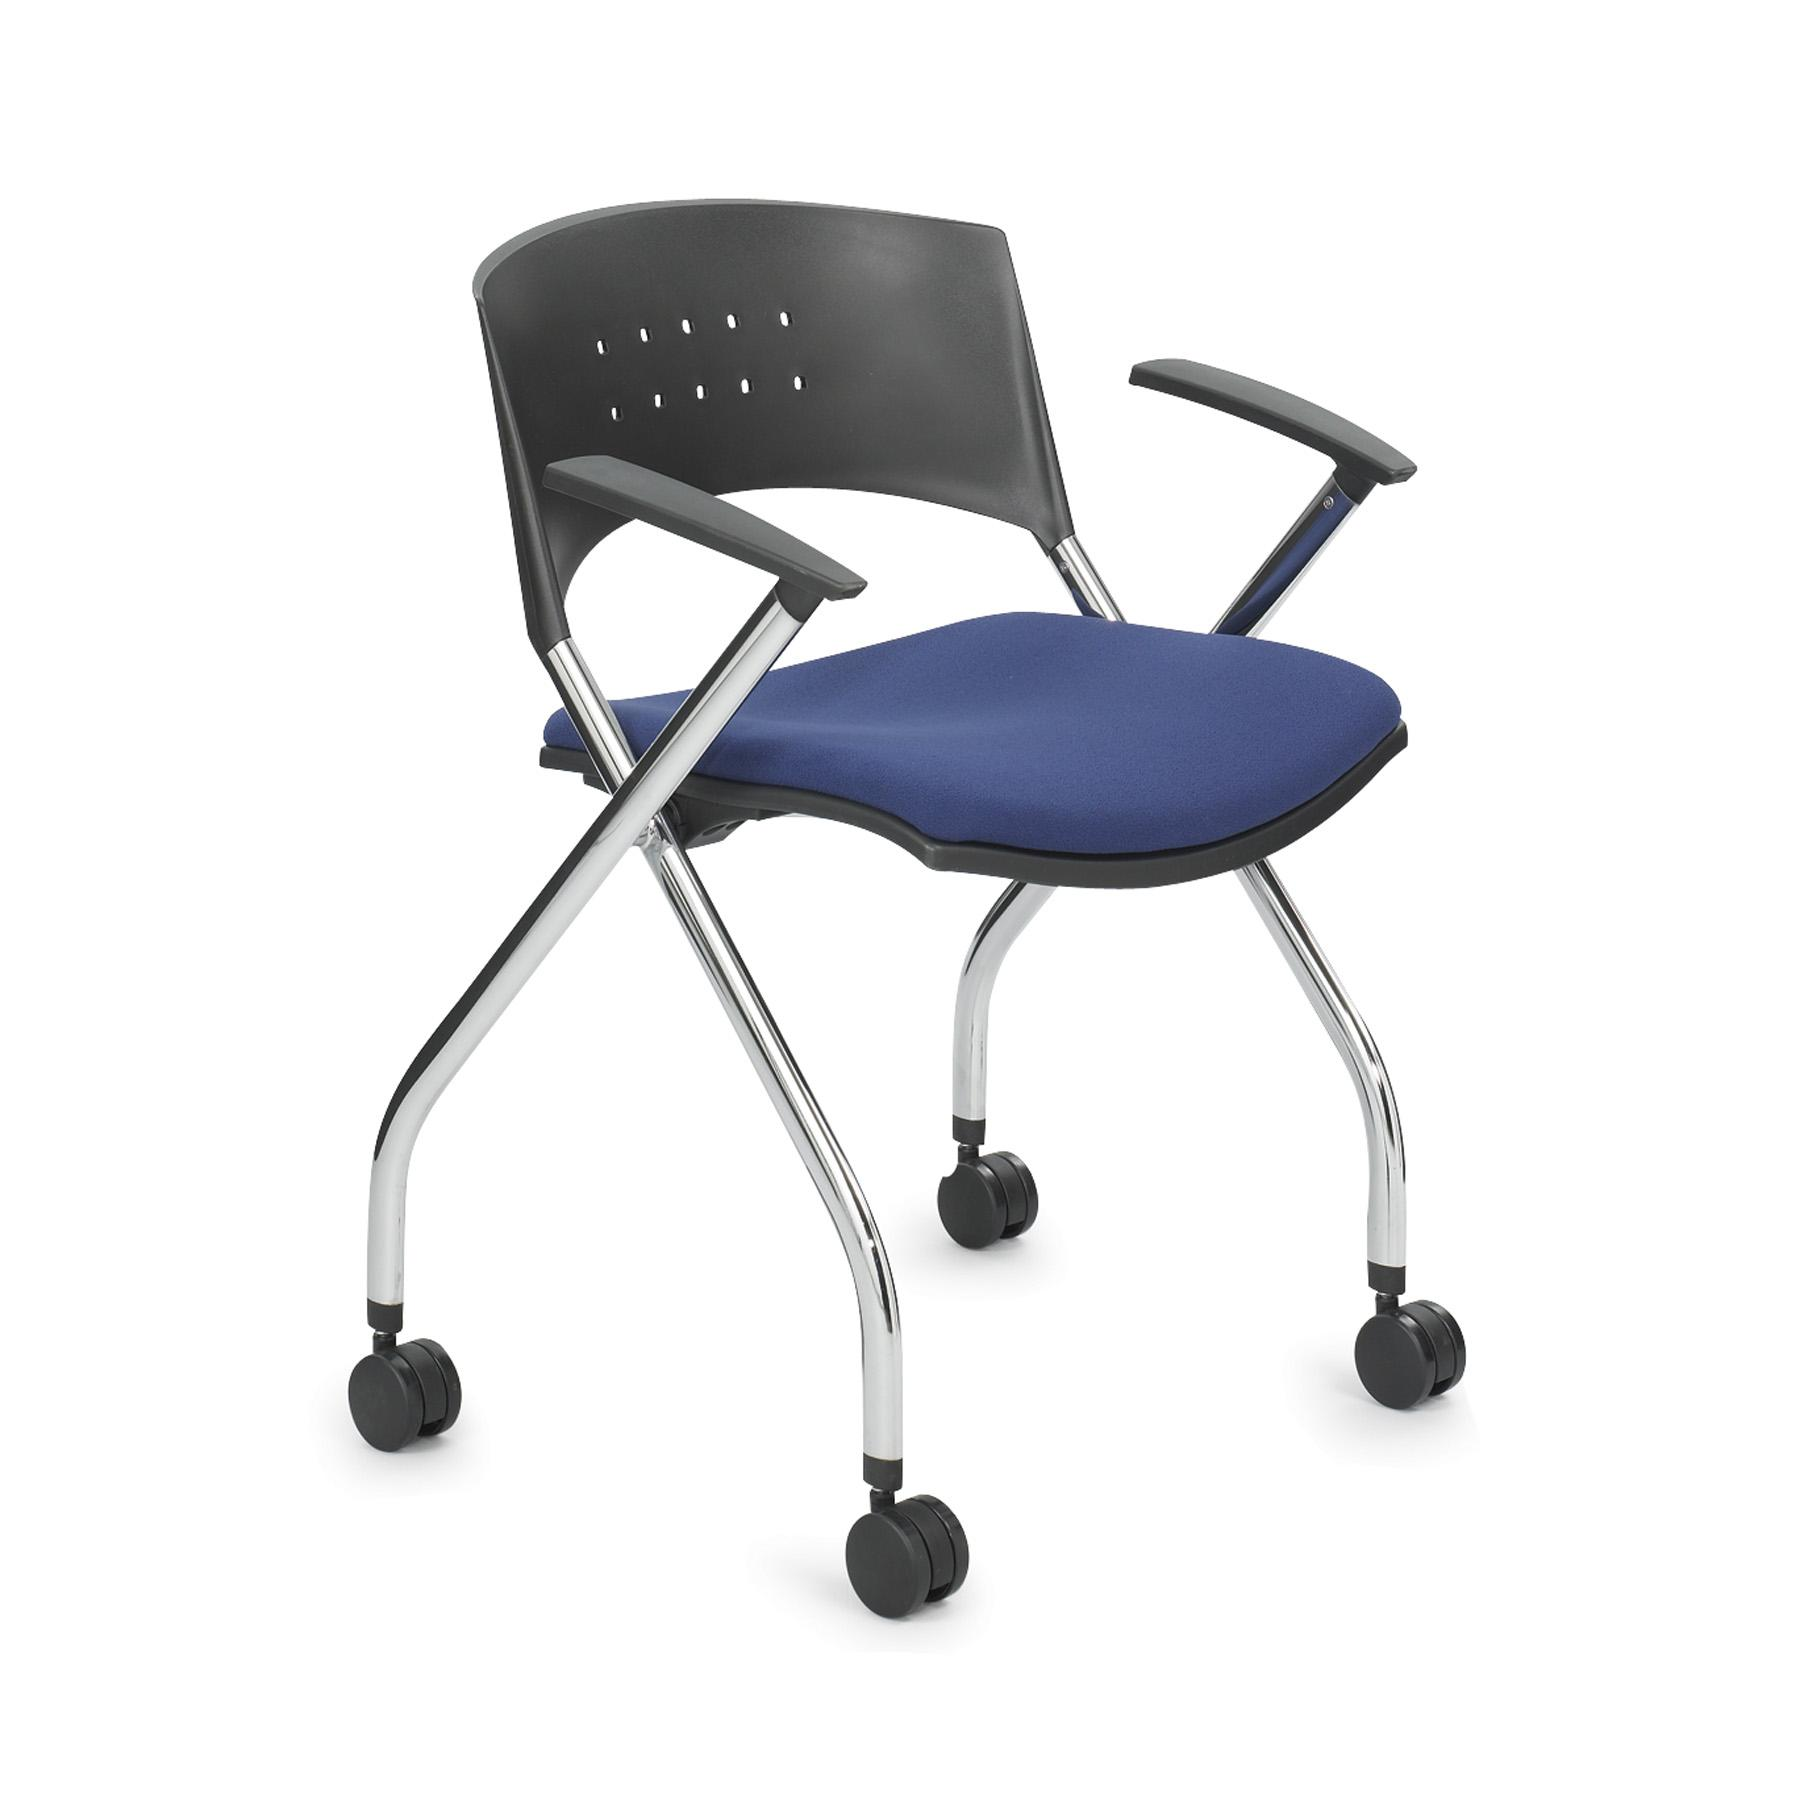 Safco 3481 XTC Series Nesting Chairs